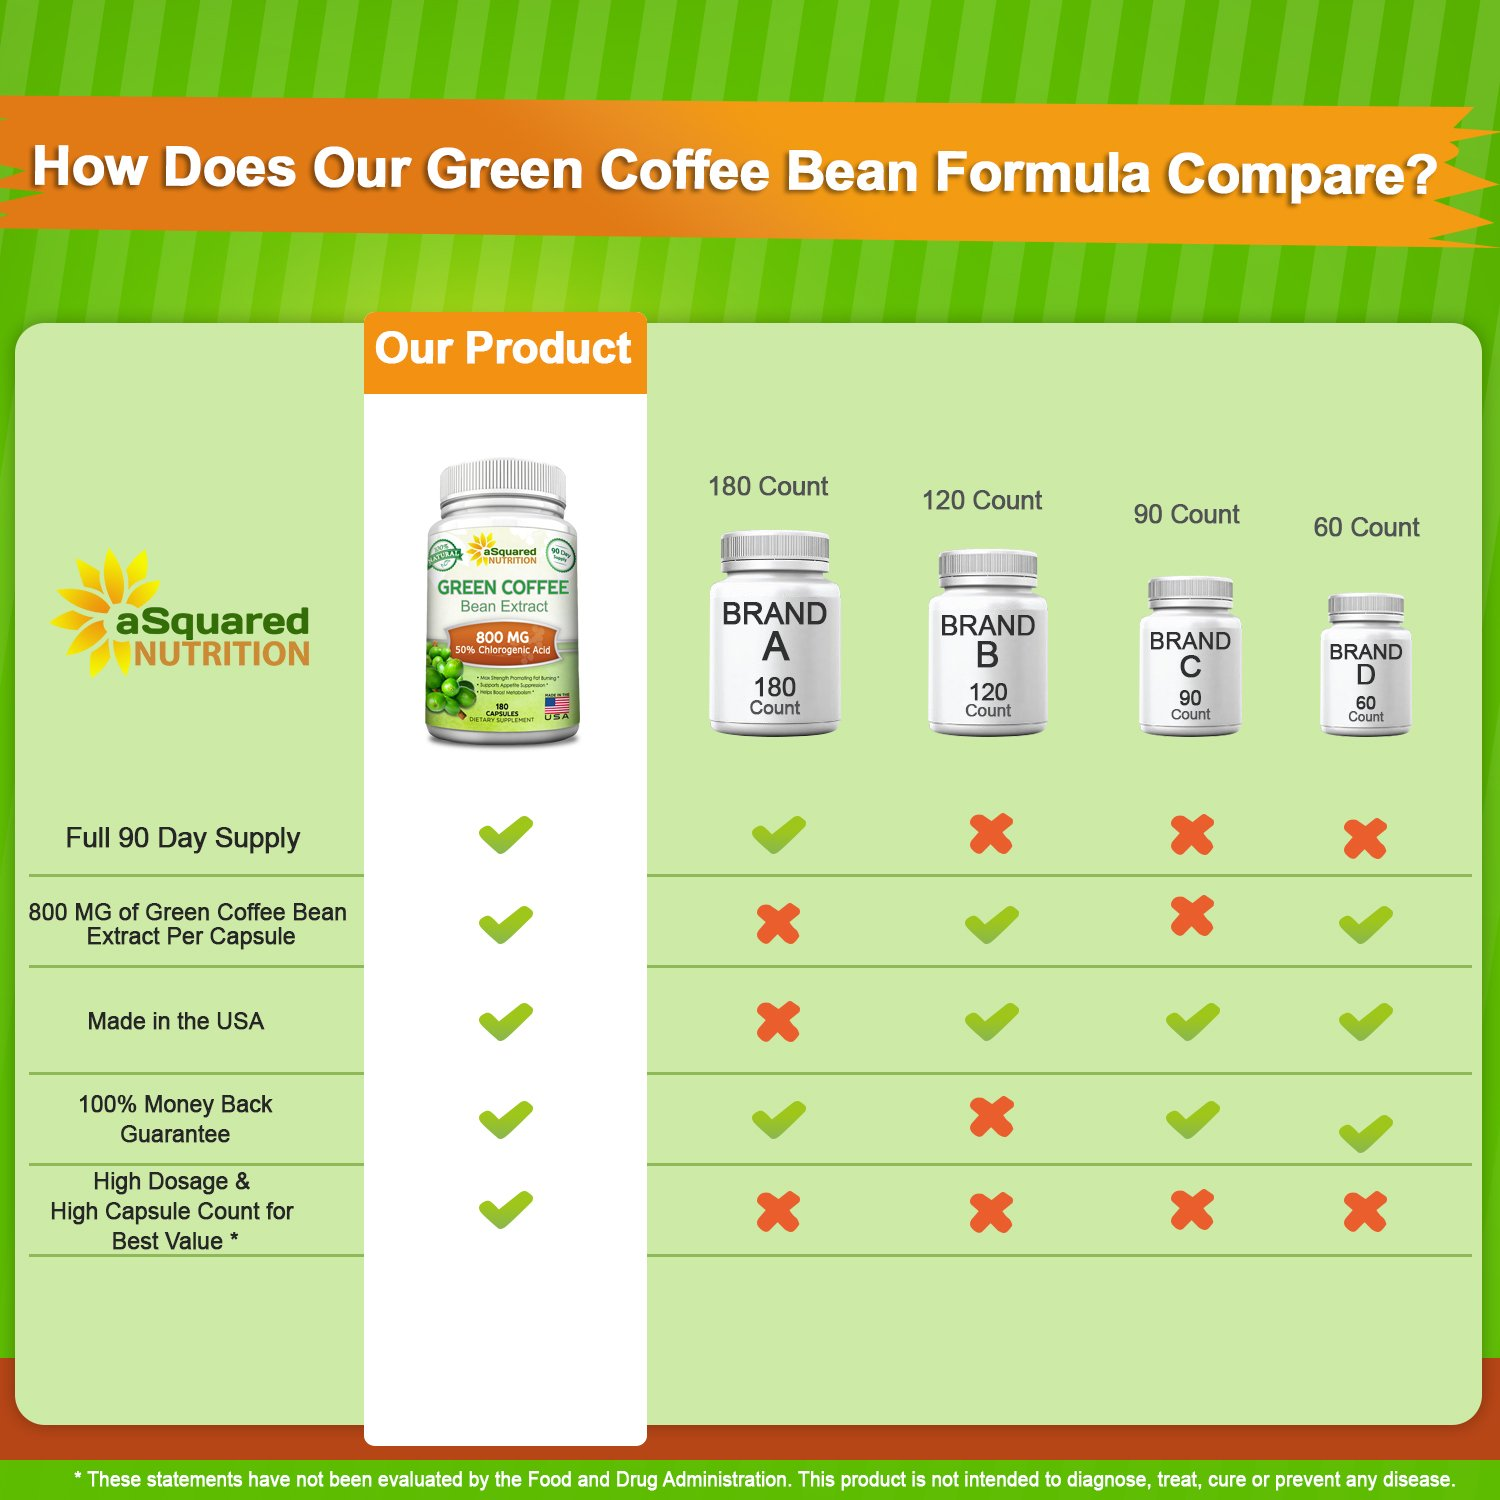 100% Pure Green Coffee Bean Extract - 180 Capsules - Max Strength Natural GCA Antioxidant Cleanse for Weight Loss, 800mg w/ 50% Chlorogenic Acid per Pill, 1600mg Daily Supplement, Healthy Fat Burner by aSquared Nutrition (Image #3)